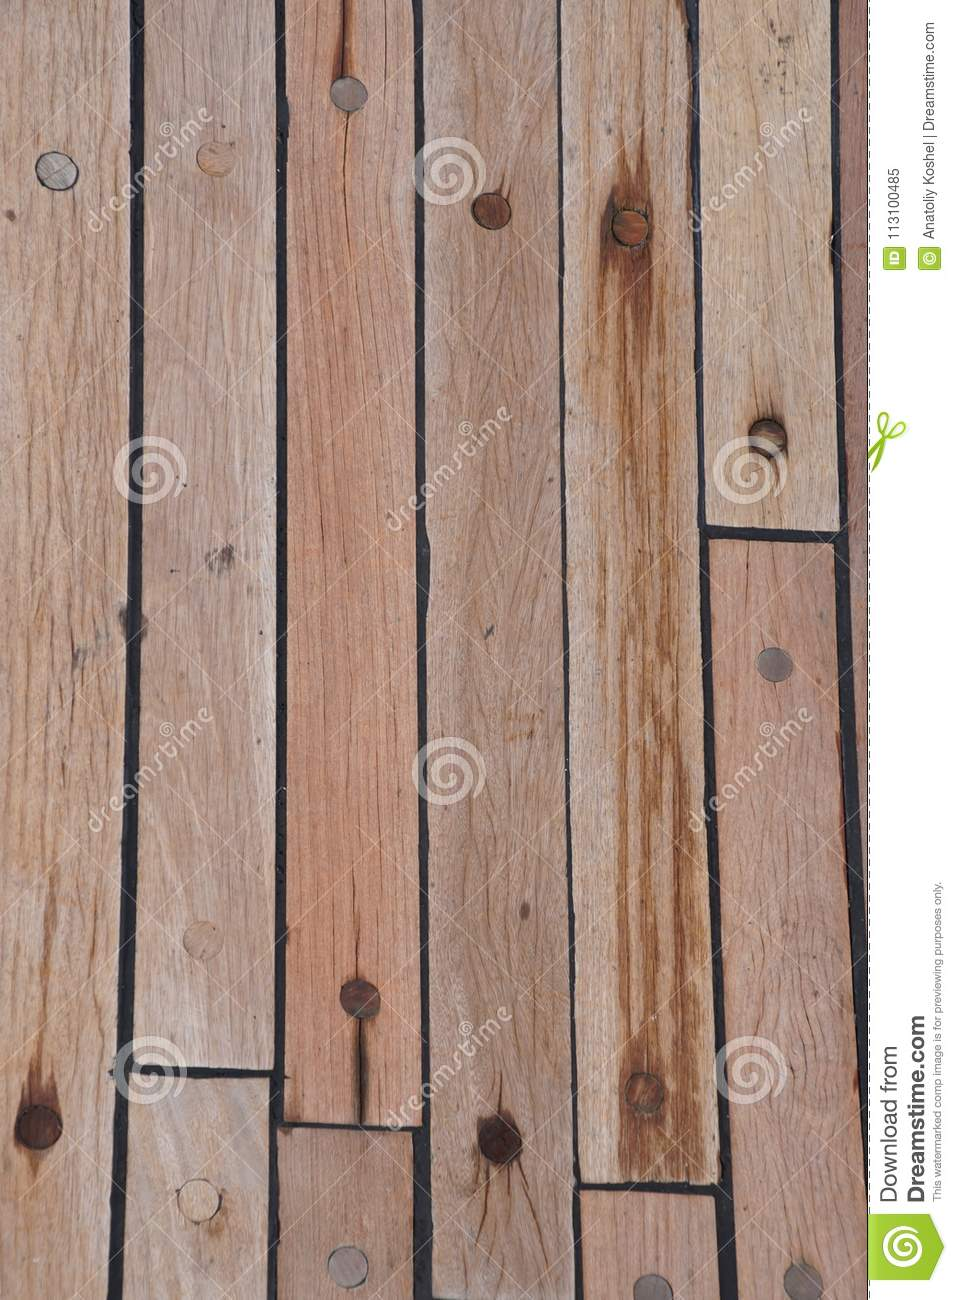 The deck is on the ship. wood texture. surface. brown.